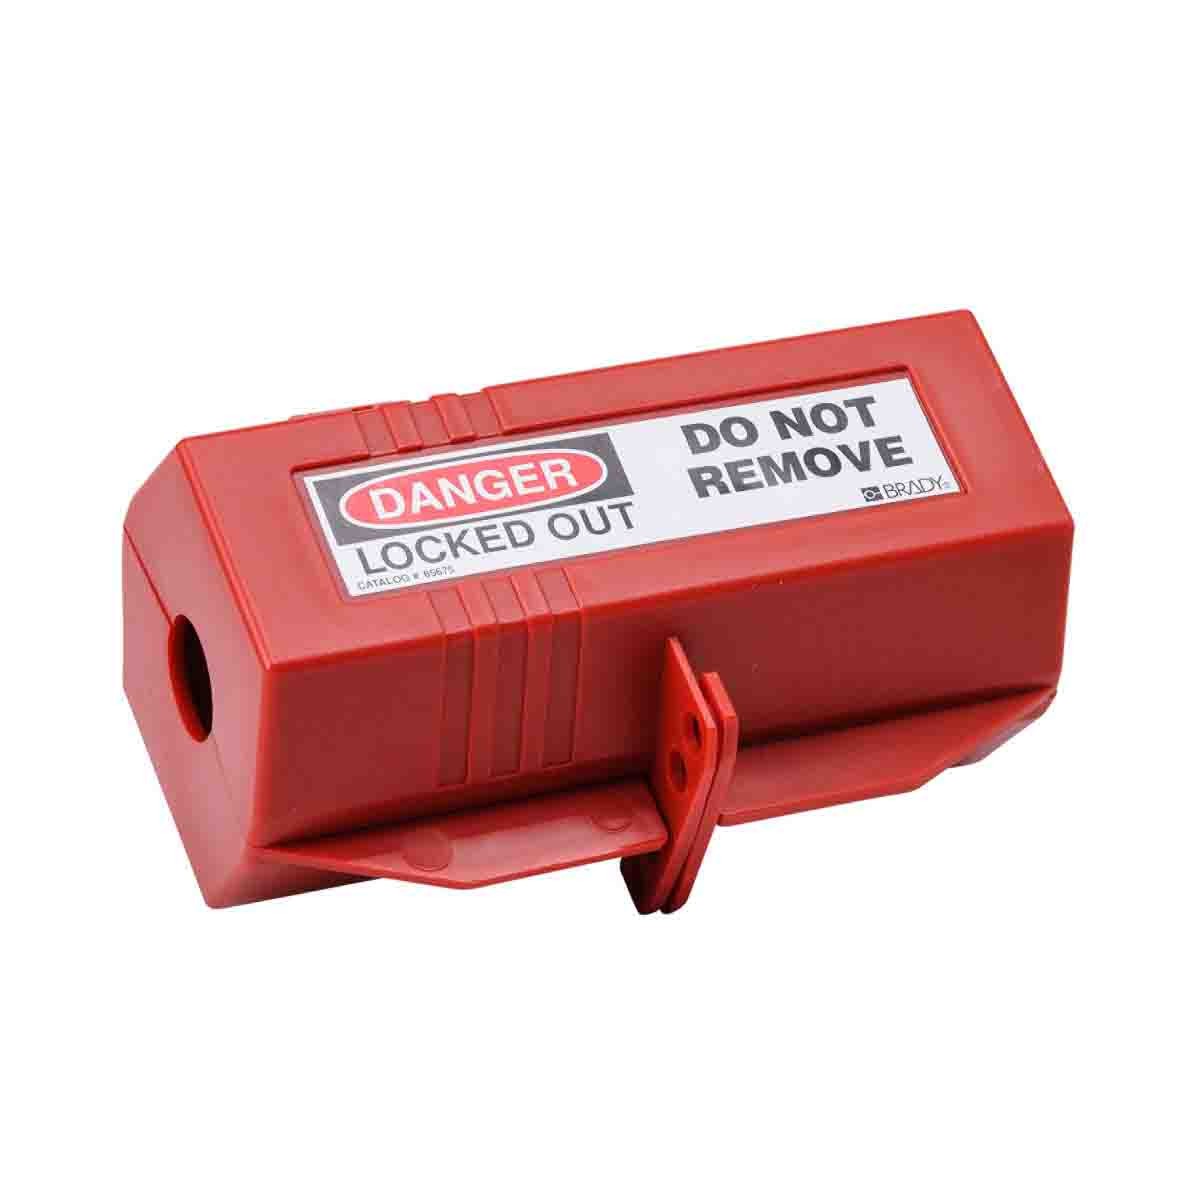 Brady® 65675 Electrical Risk Large Plug Lockout Device, For Use With Up to 1 in Dia Cord and 2-1/2 in L Plug, 4 Padlocks, 0.36 in Dia Max Padlock Shackle, LOTO-29 Polypropylene, Red